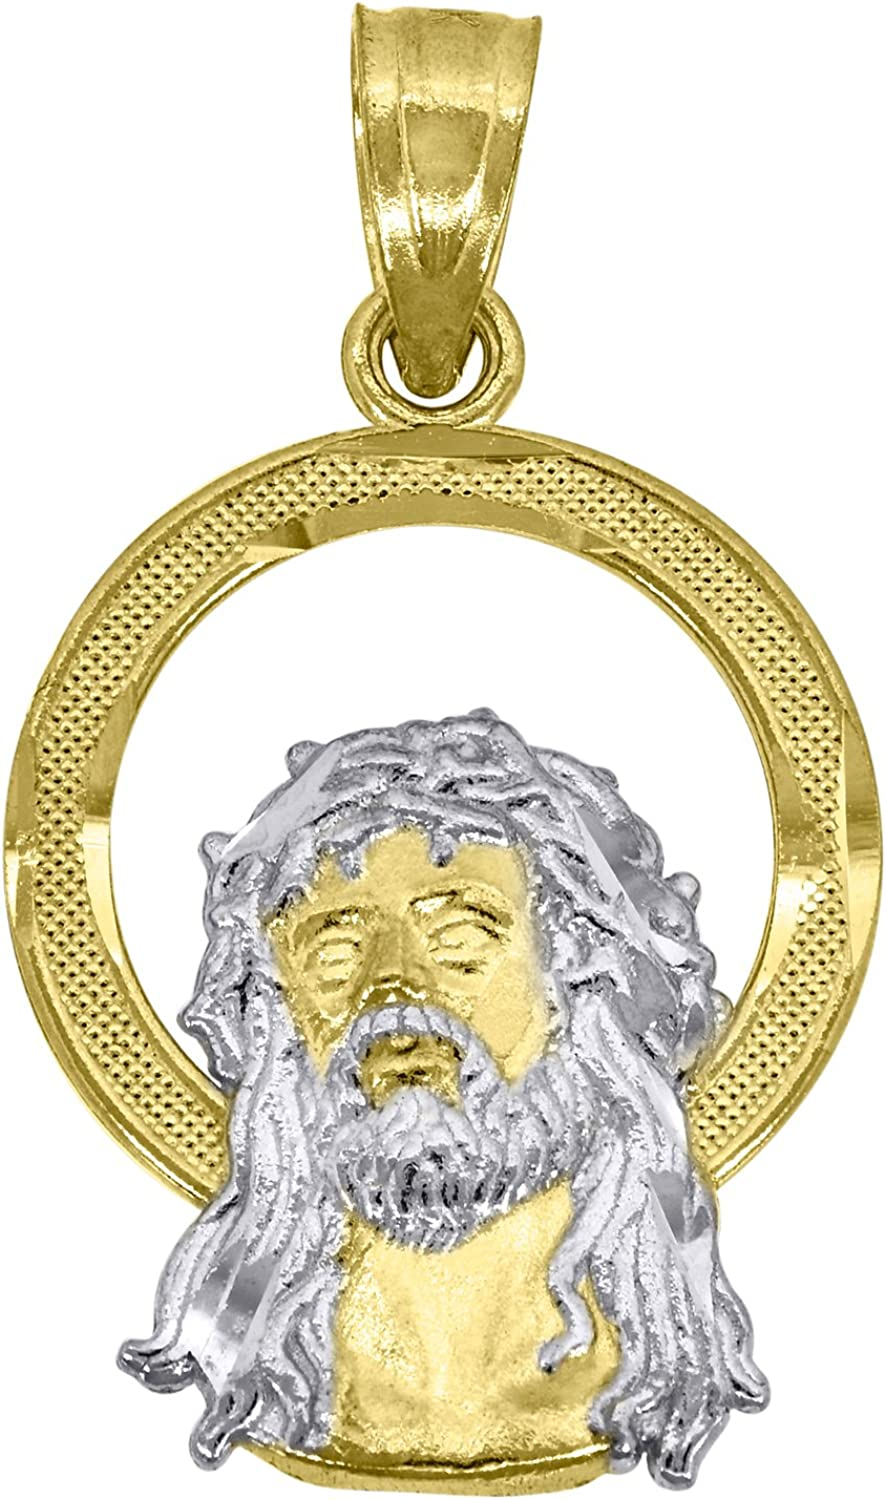 10kt Gold Two-tone Textured Womens Jesus Ht:22.6mm x W:12.9mm Religious Charm Pendant